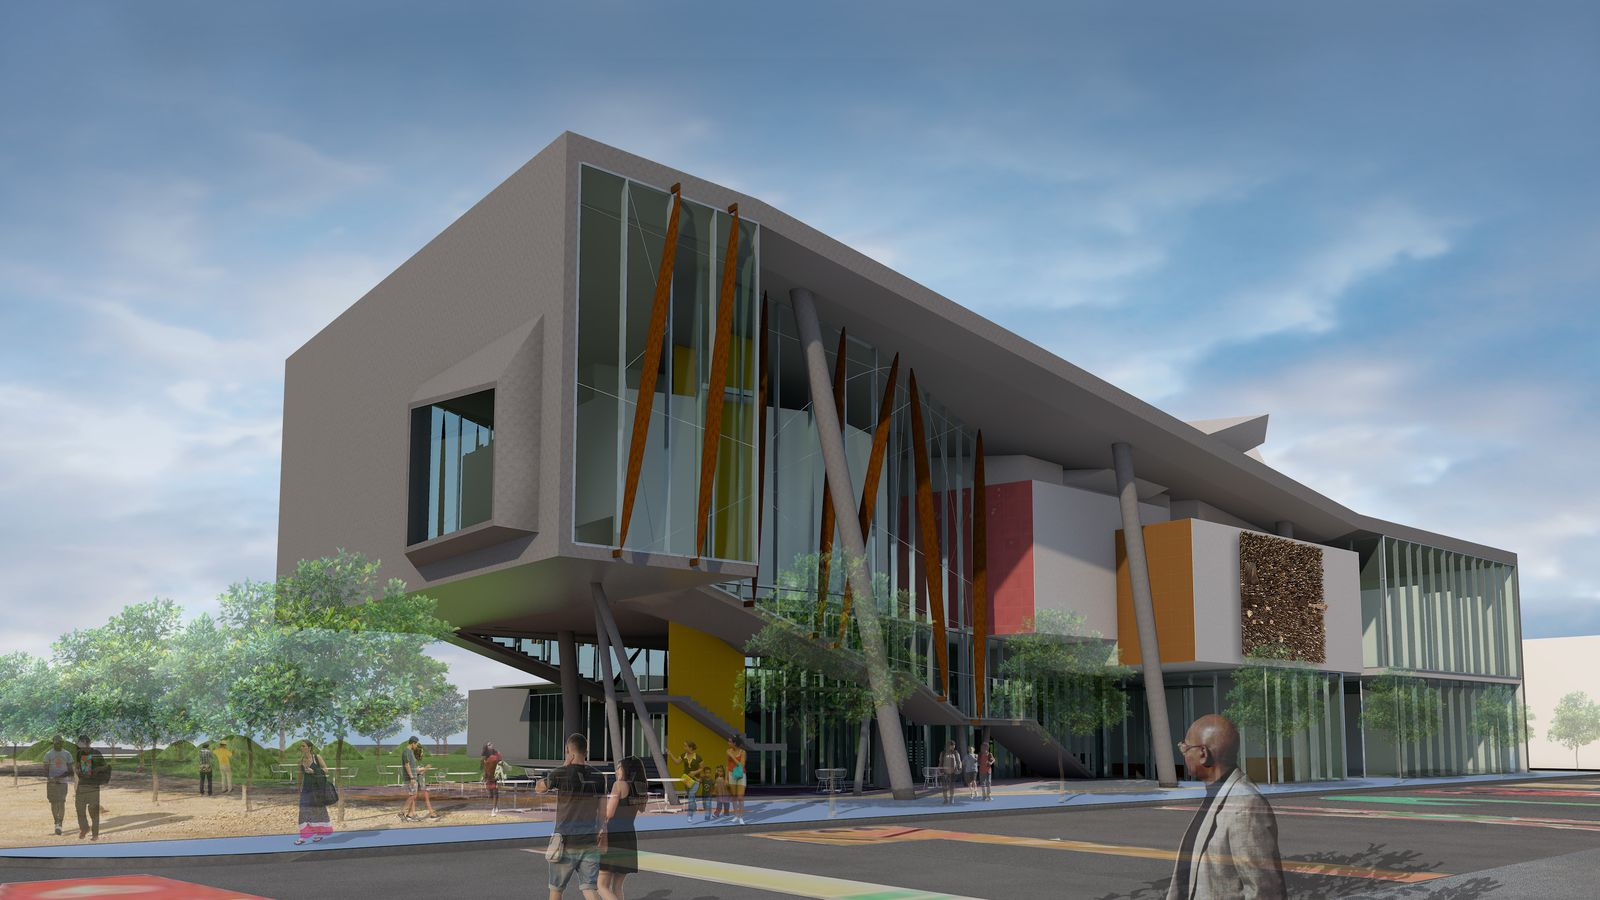 Concept illustration of proposed new museum.